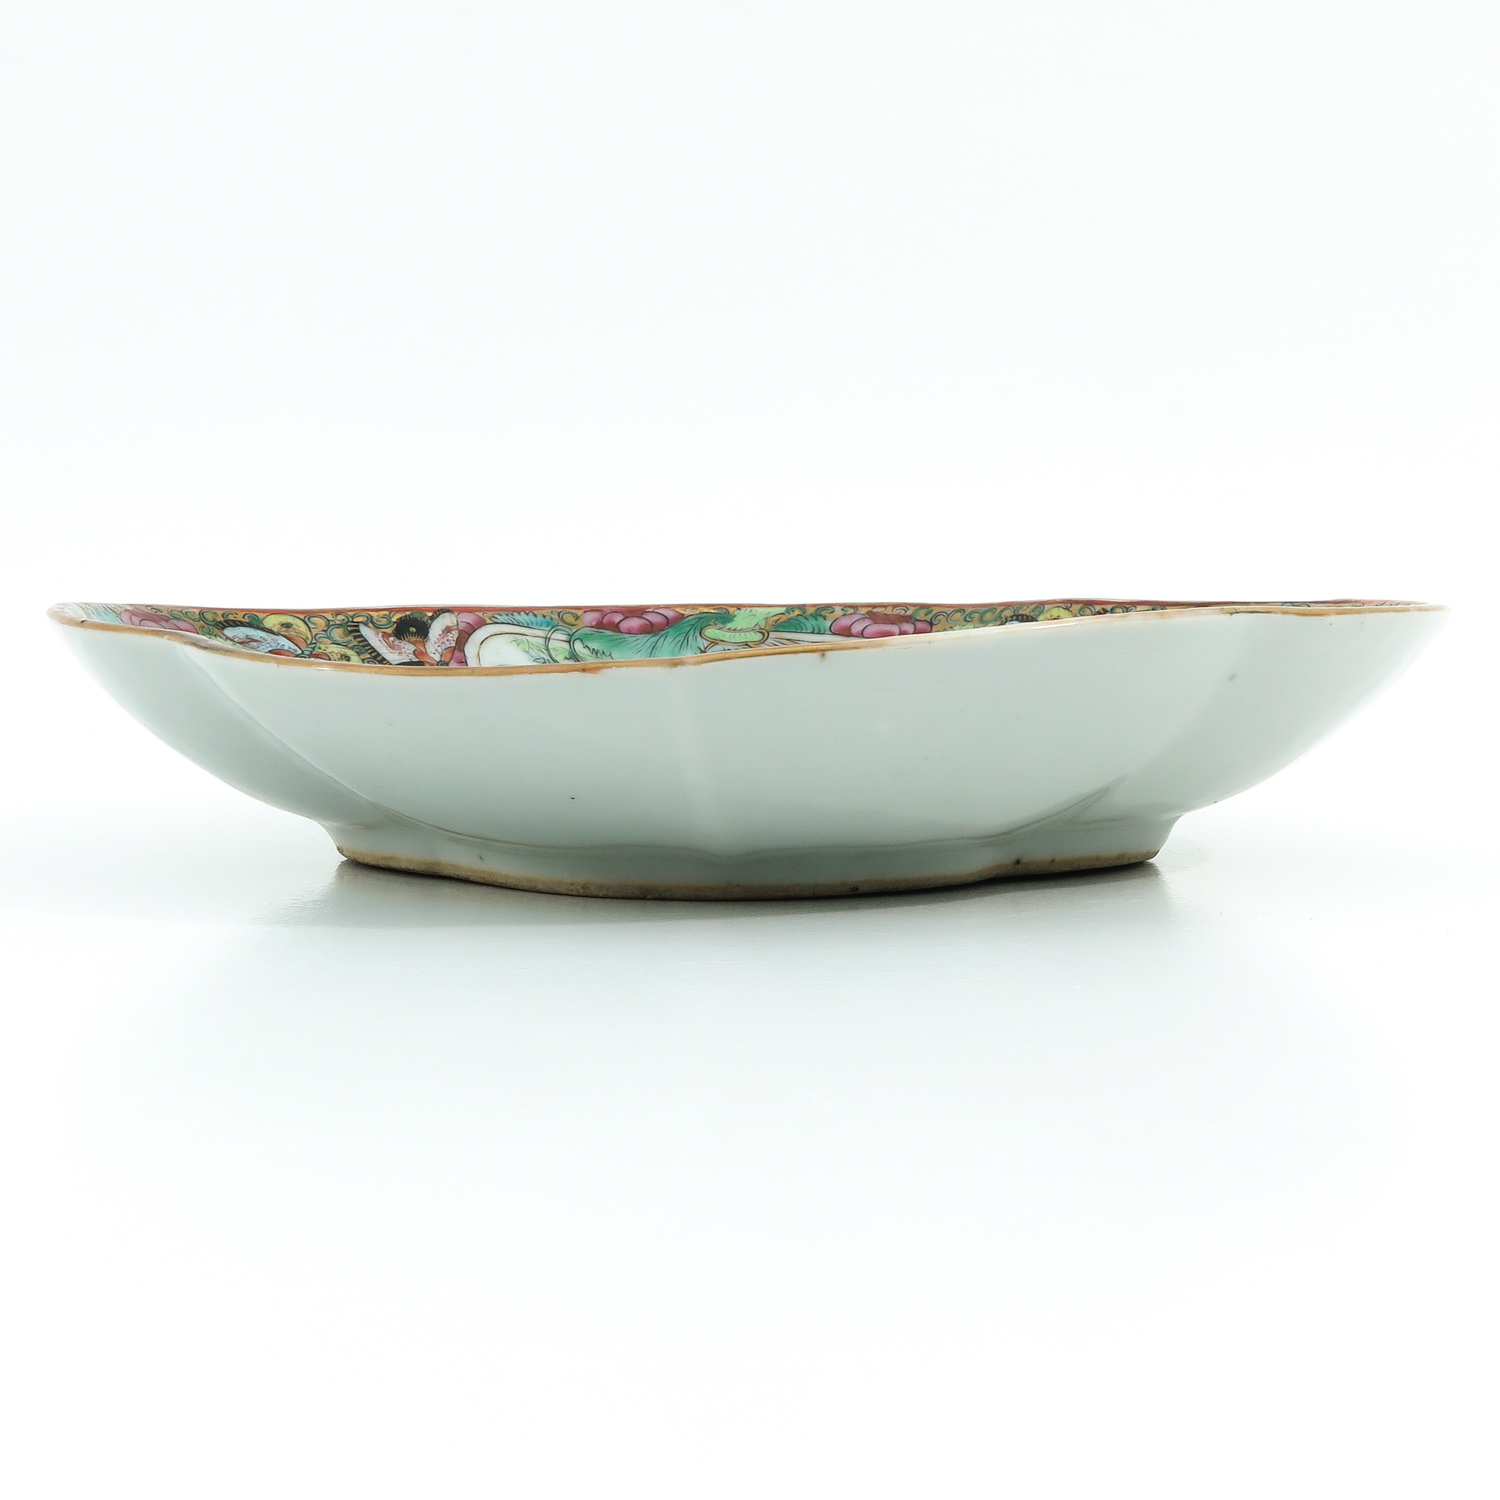 A Cantonese Dish - Image 4 of 7